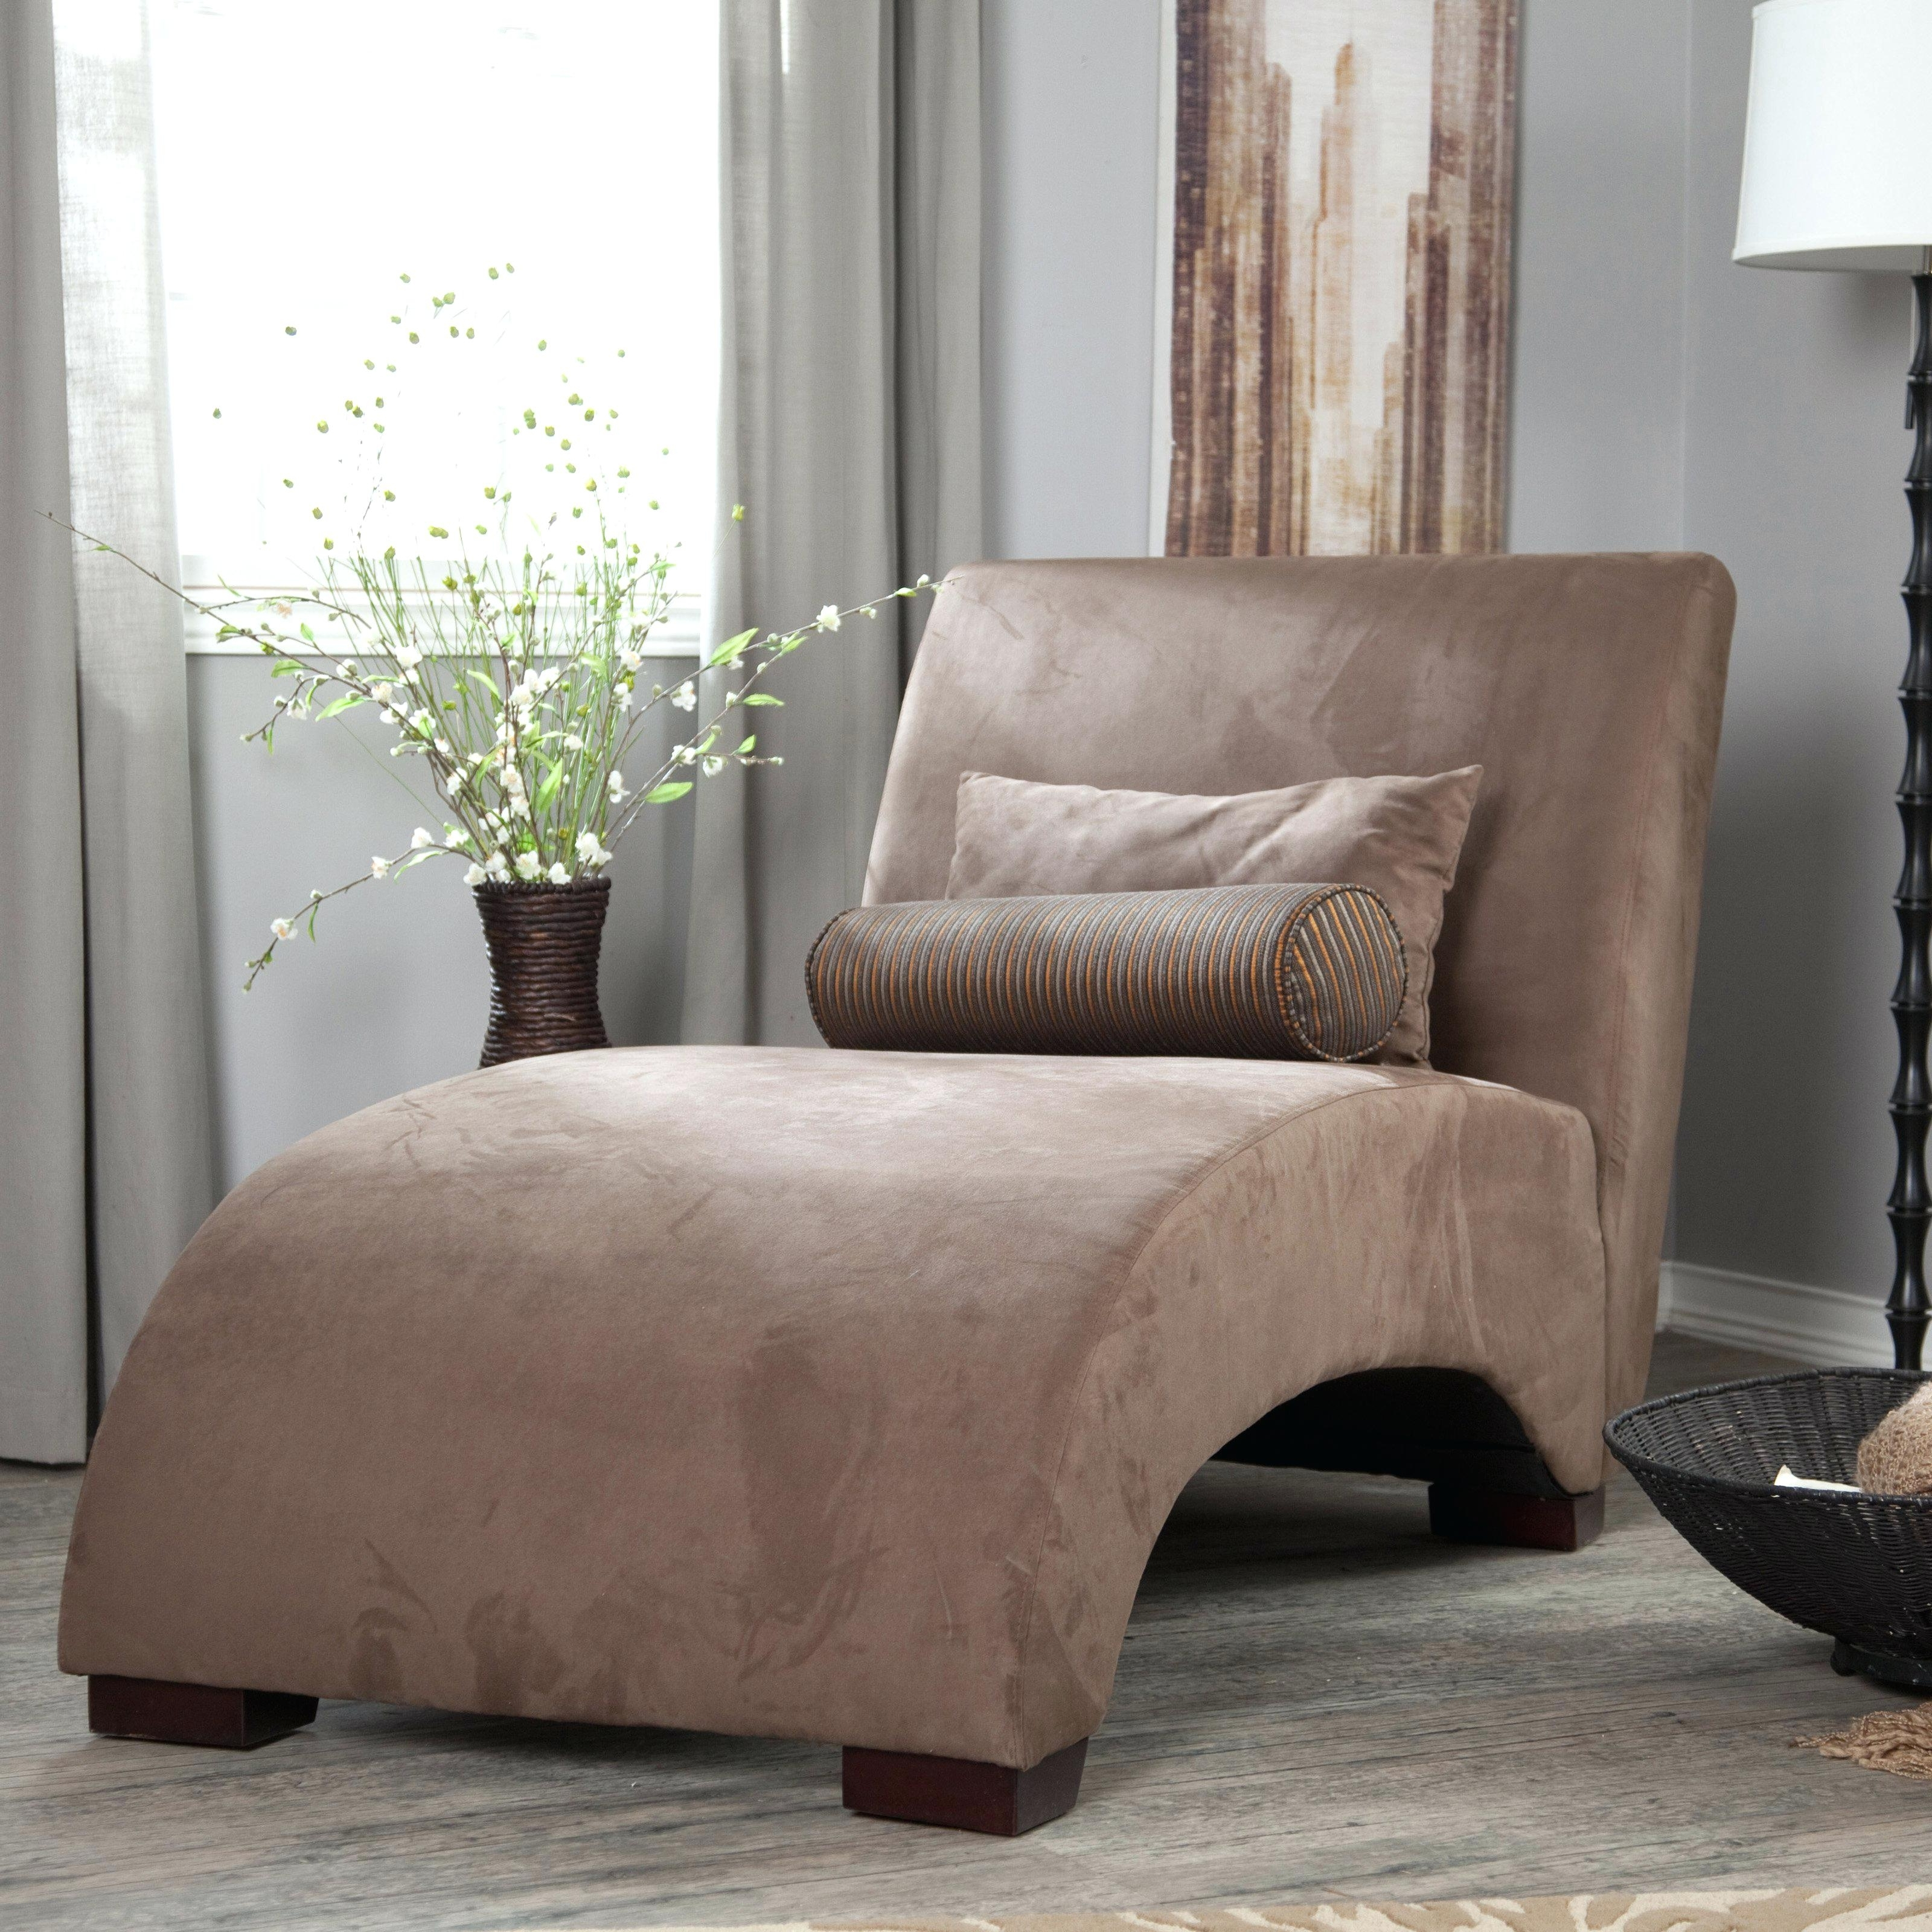 Well Known Armless Chaise Lounges In Armless Lounge Chair Slipcovers • Lounge Chairs Ideas (View 7 of 15)